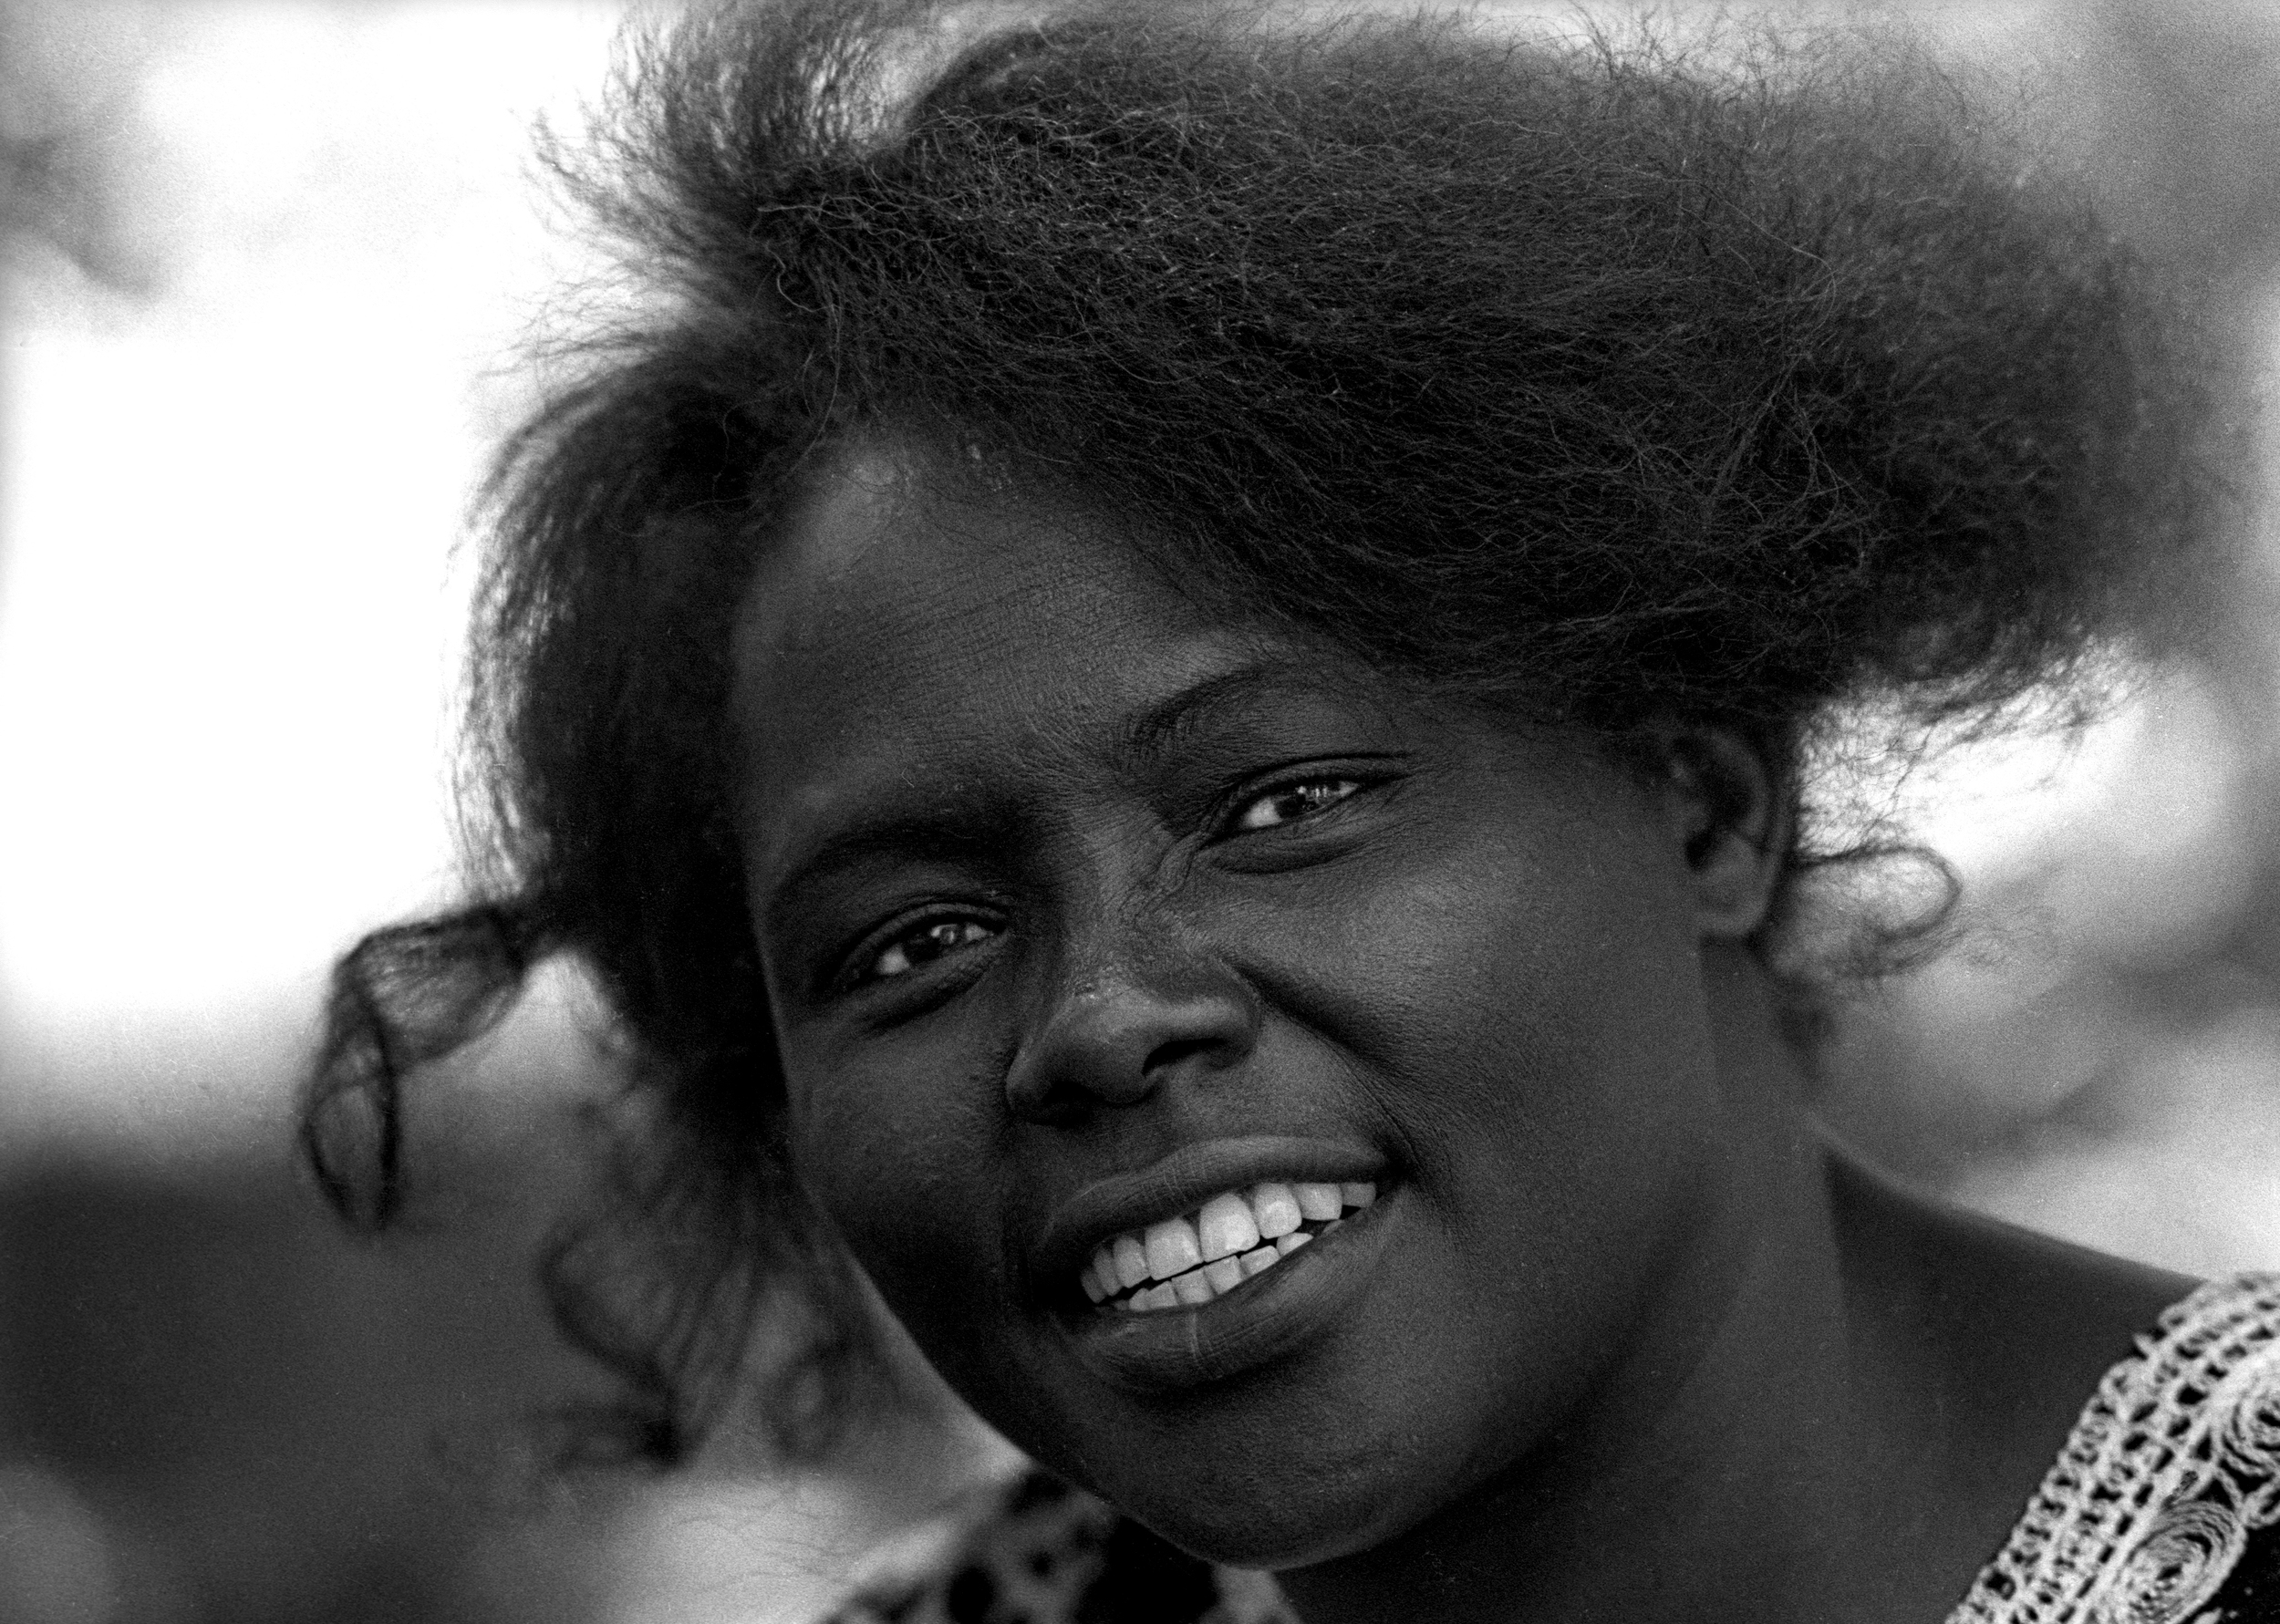 Wangari Maathai, activist and environmentalist